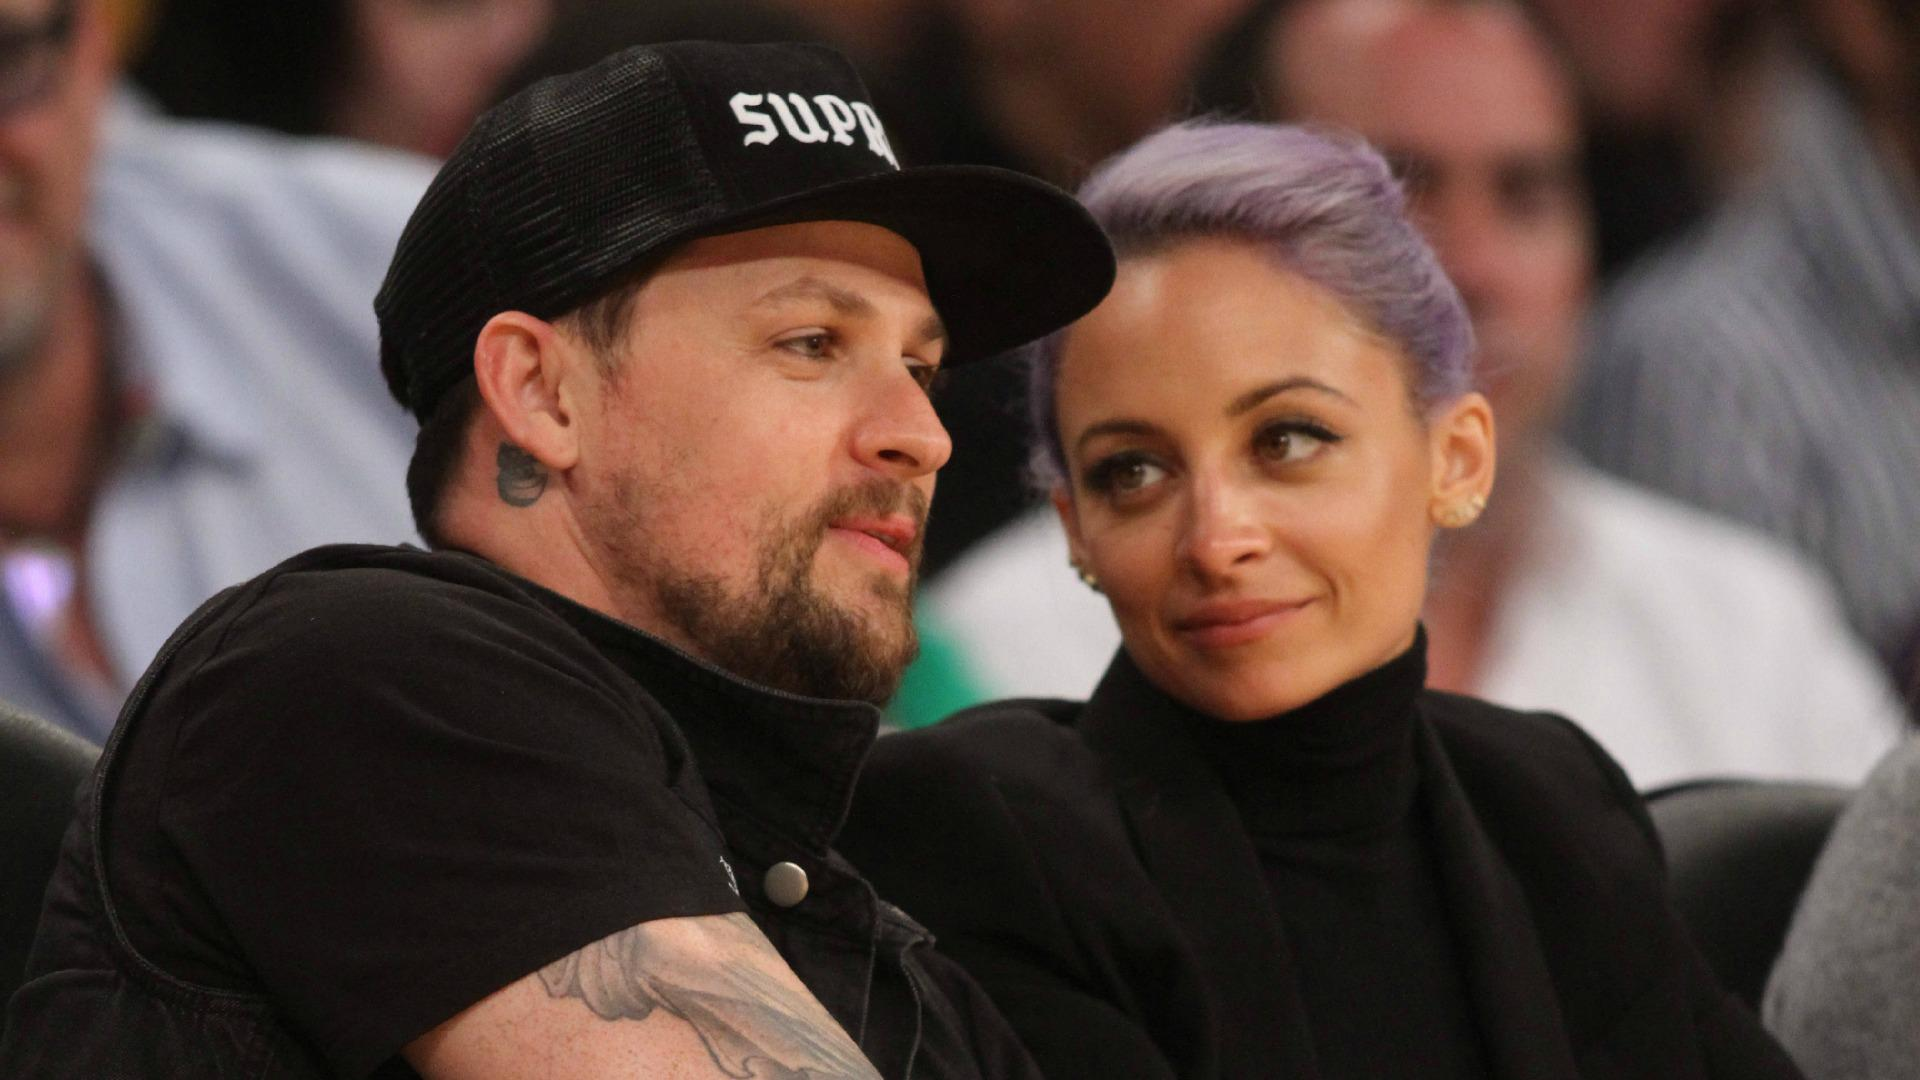 The new family of Nicole Richie and Joel Madden